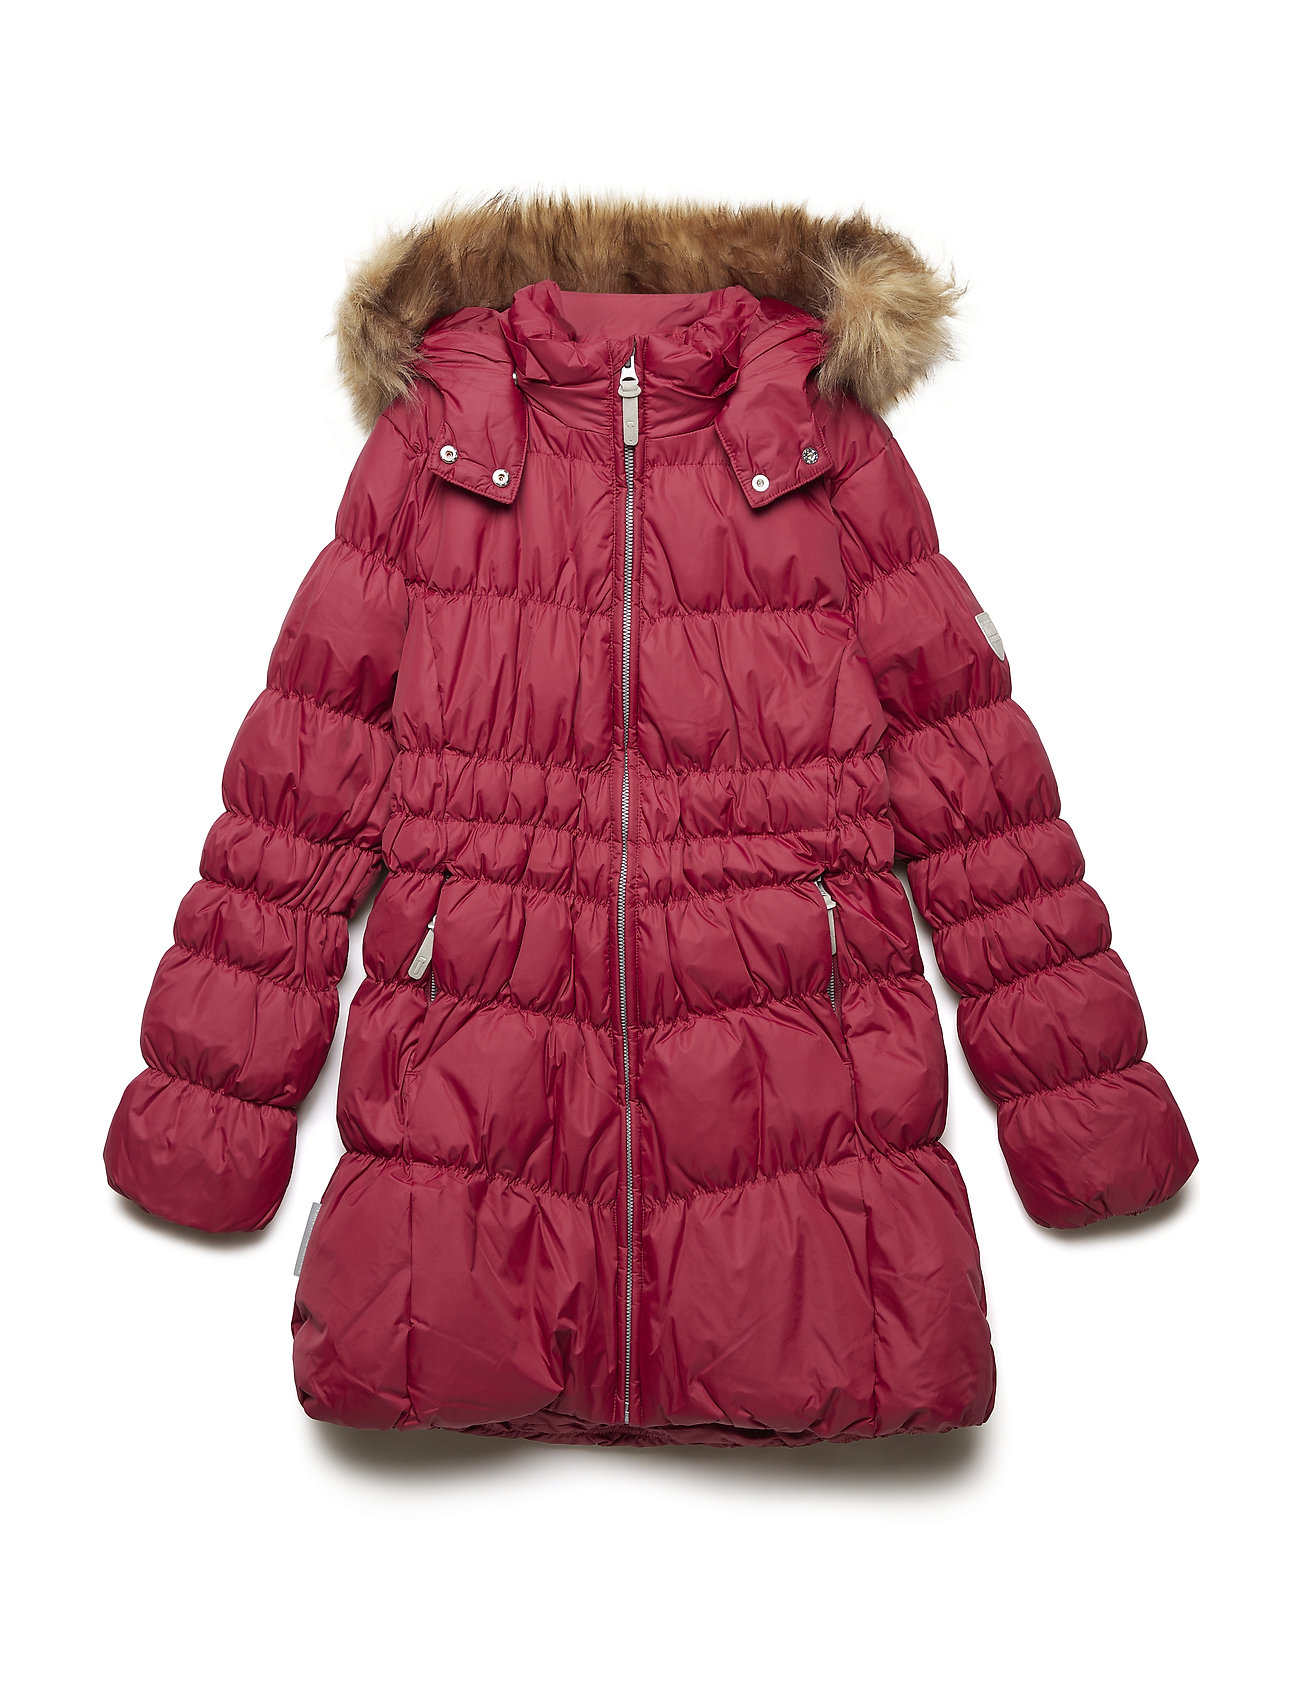 Ticket to Heaven Jacket down Marilyn with detachable hood - RUMBA RED